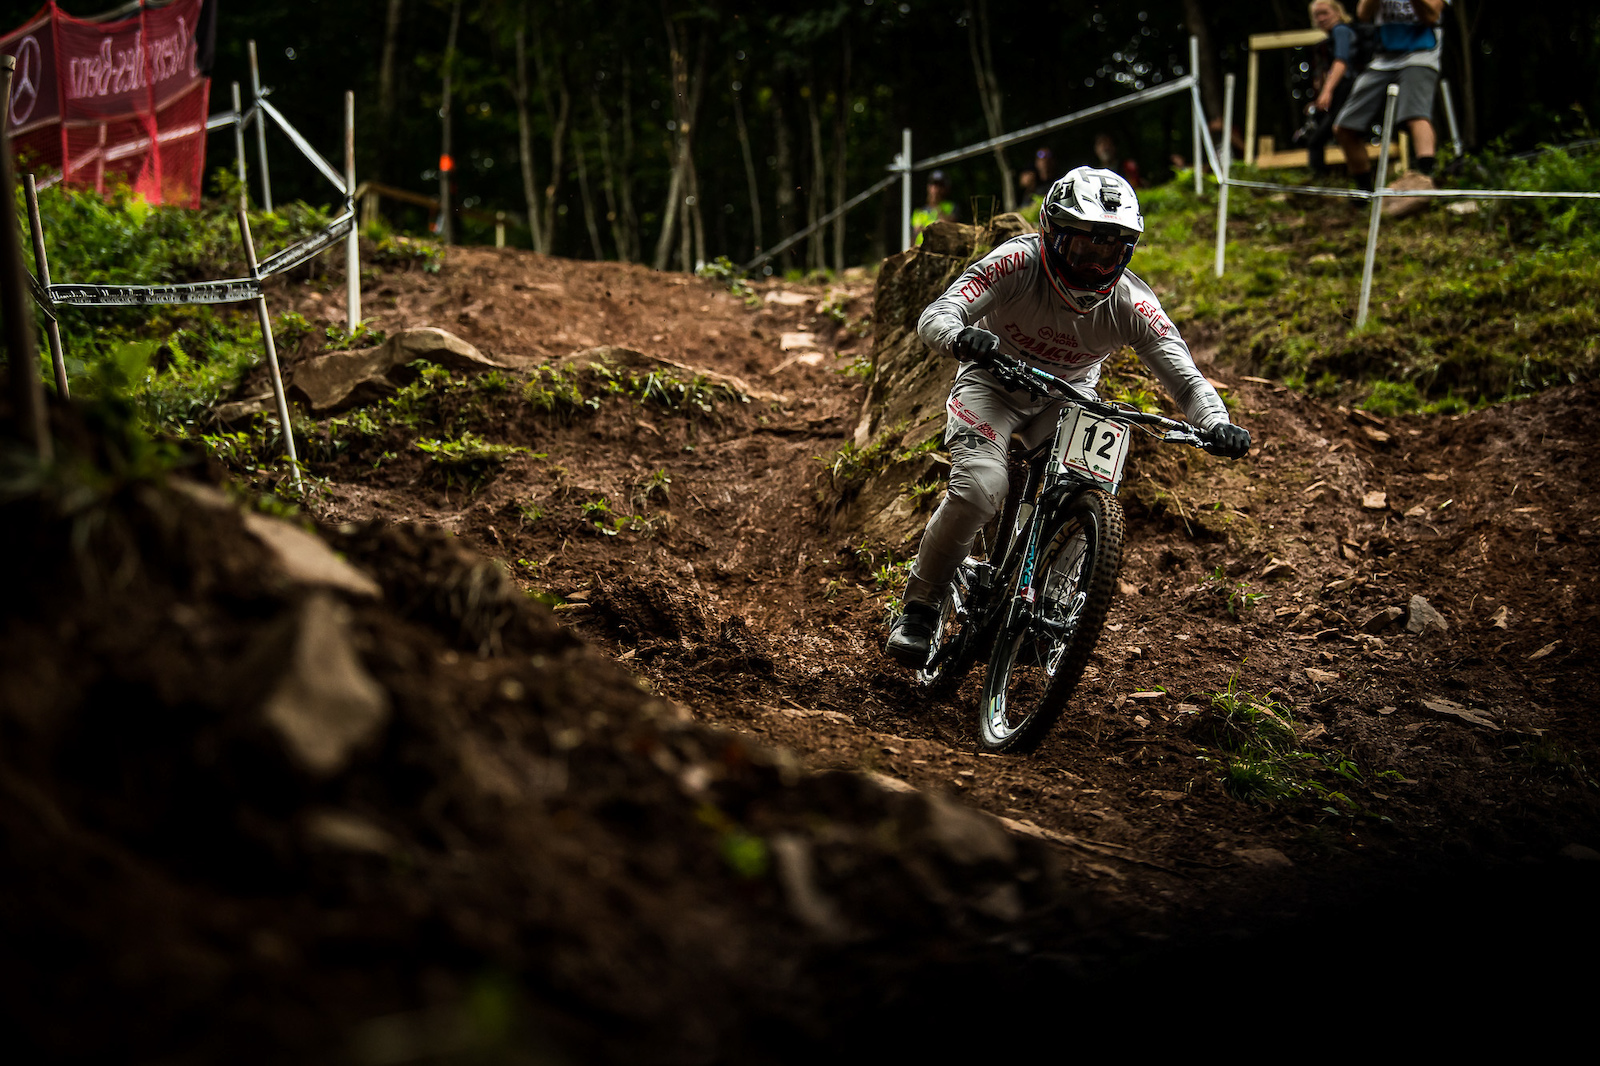 Thirion always kills it when the going gets steep.